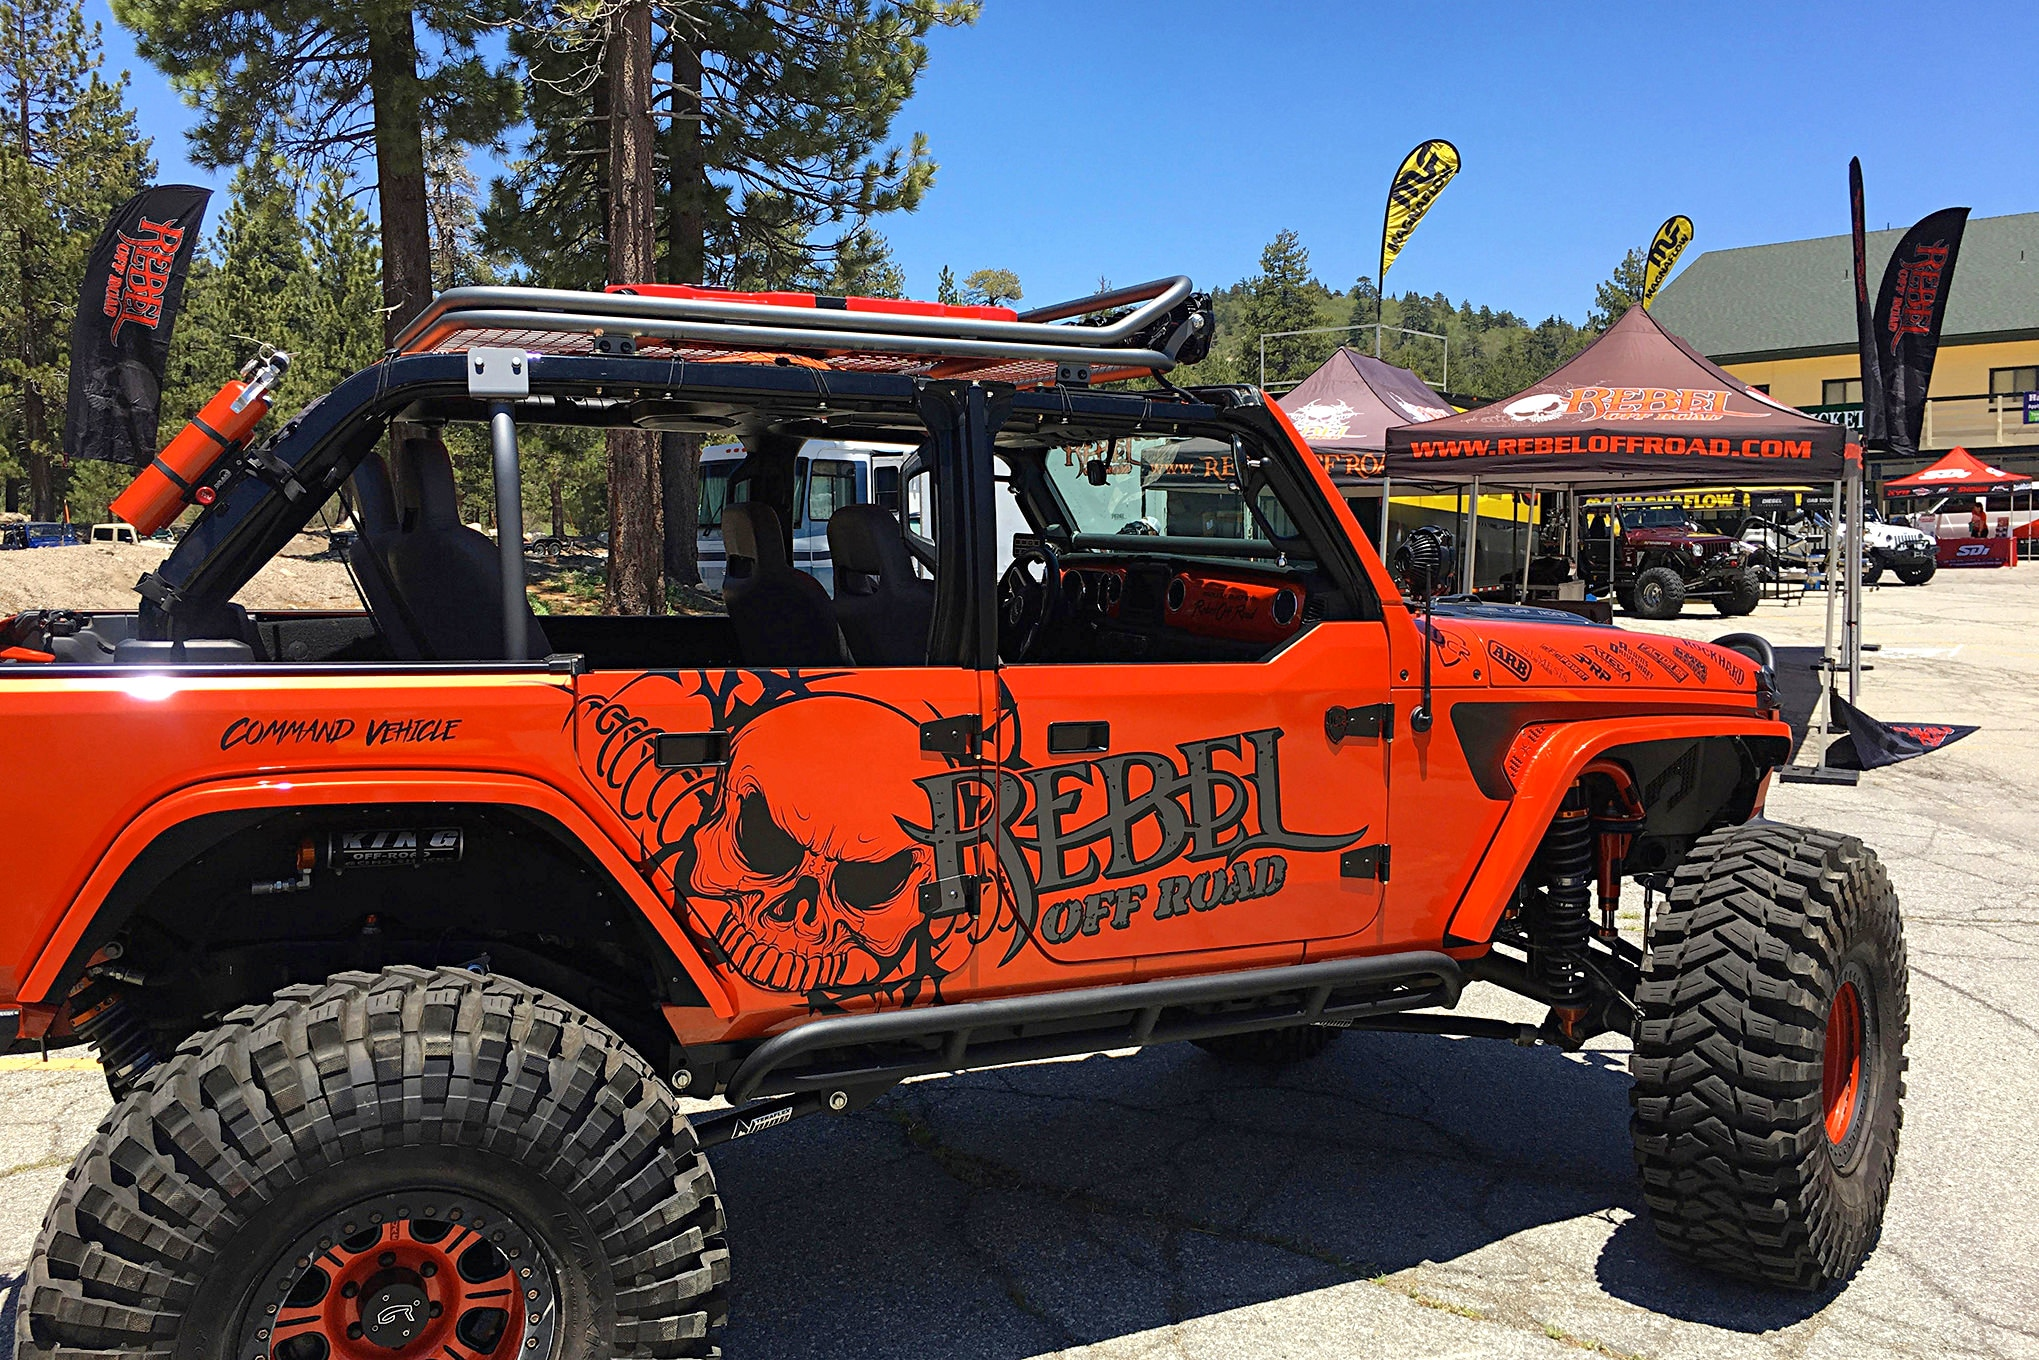 057 jeep event big bear forest fest 2019 inland empire